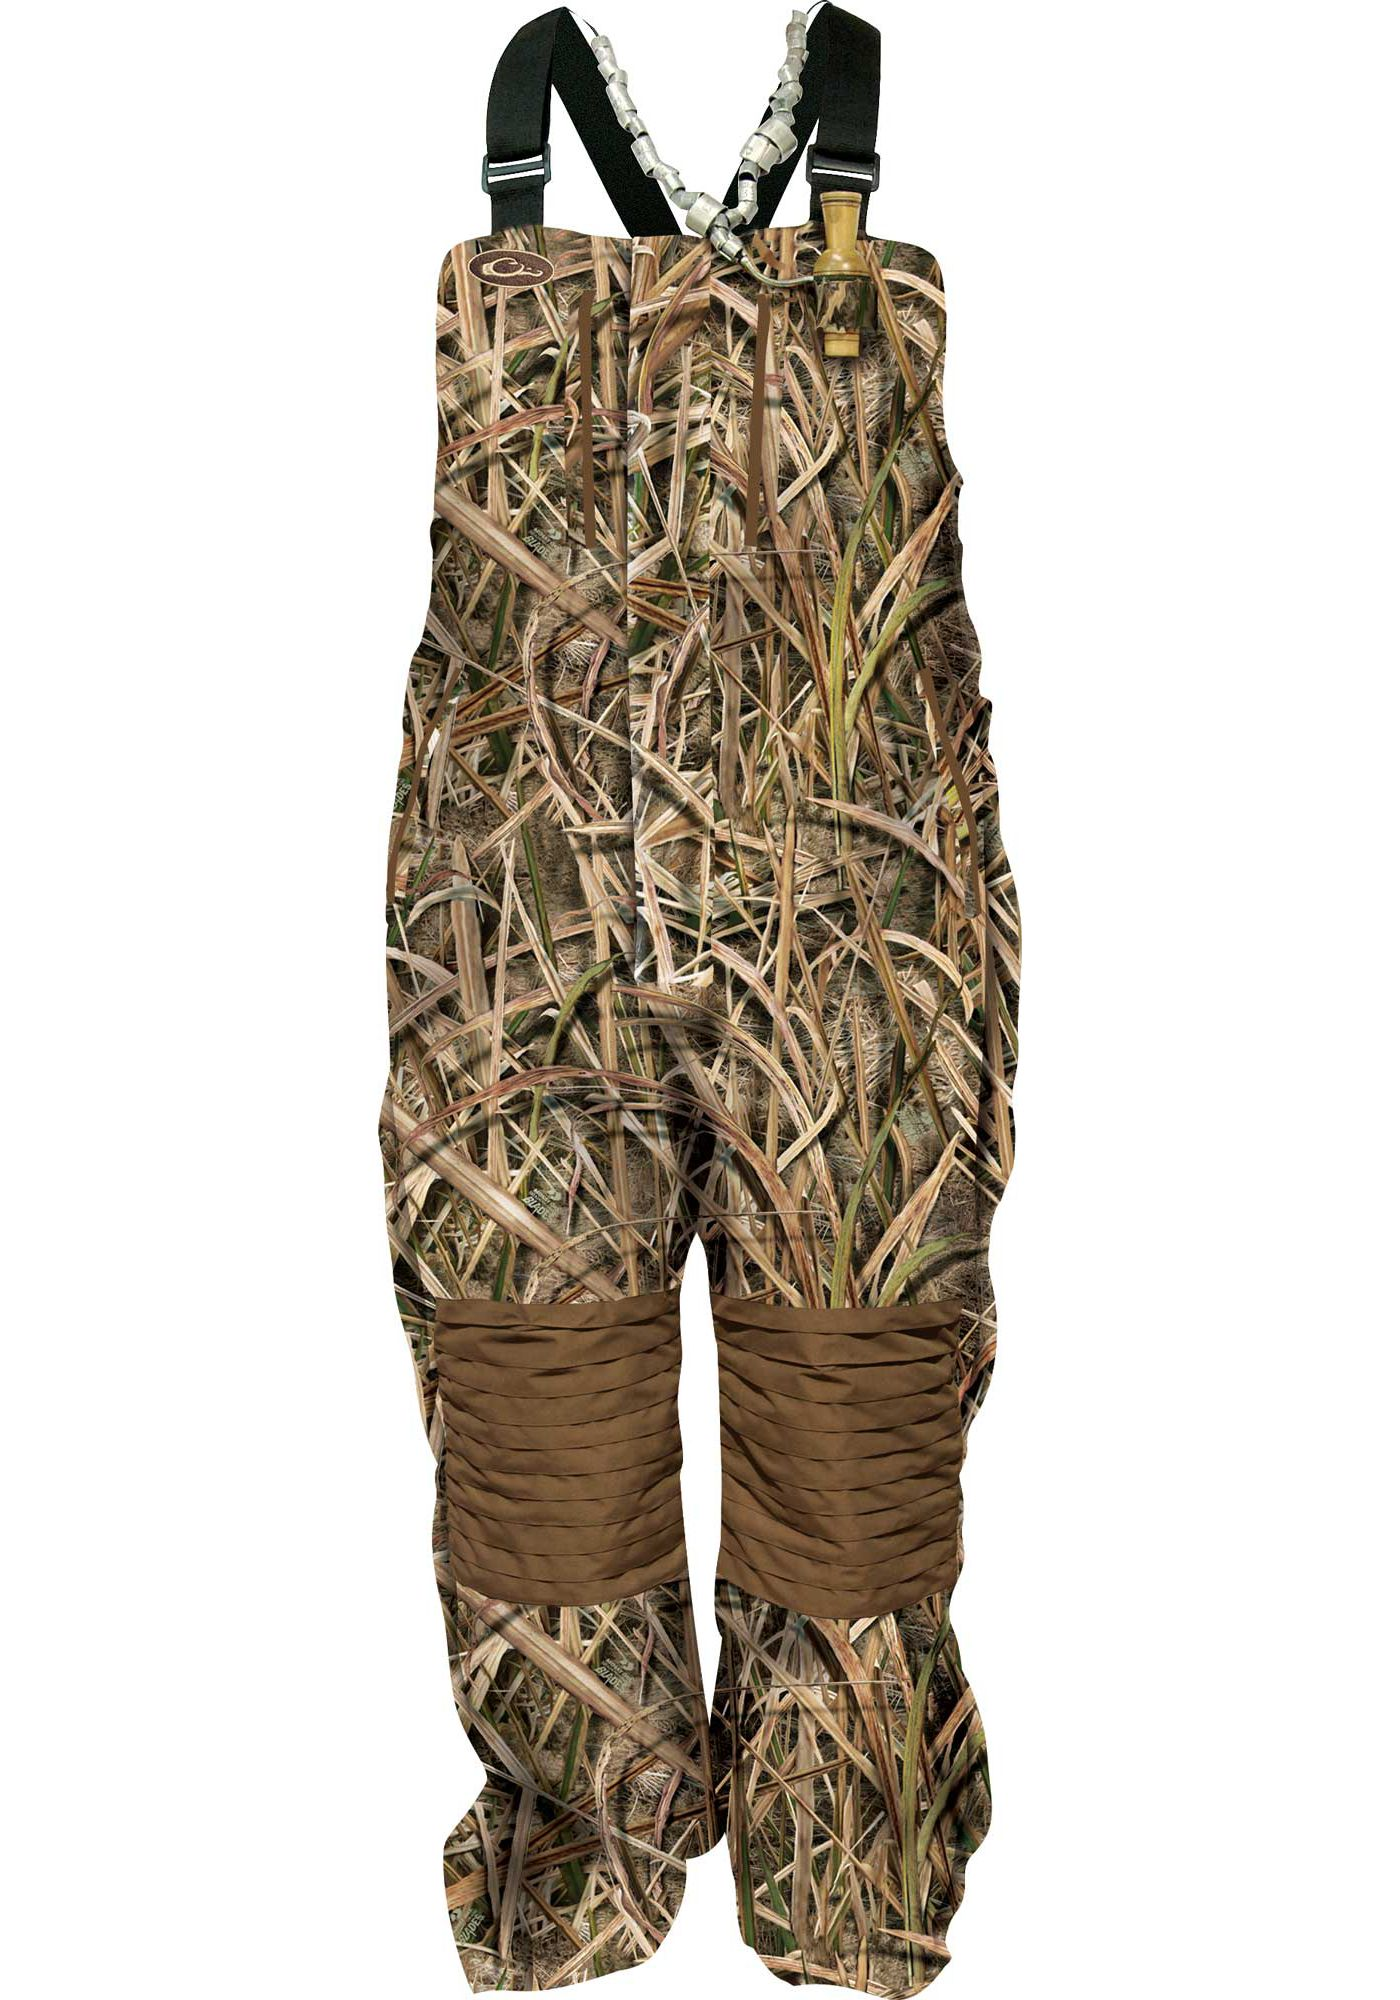 Drake Waterfowl Men's LST 2.0 Insulated Bibs